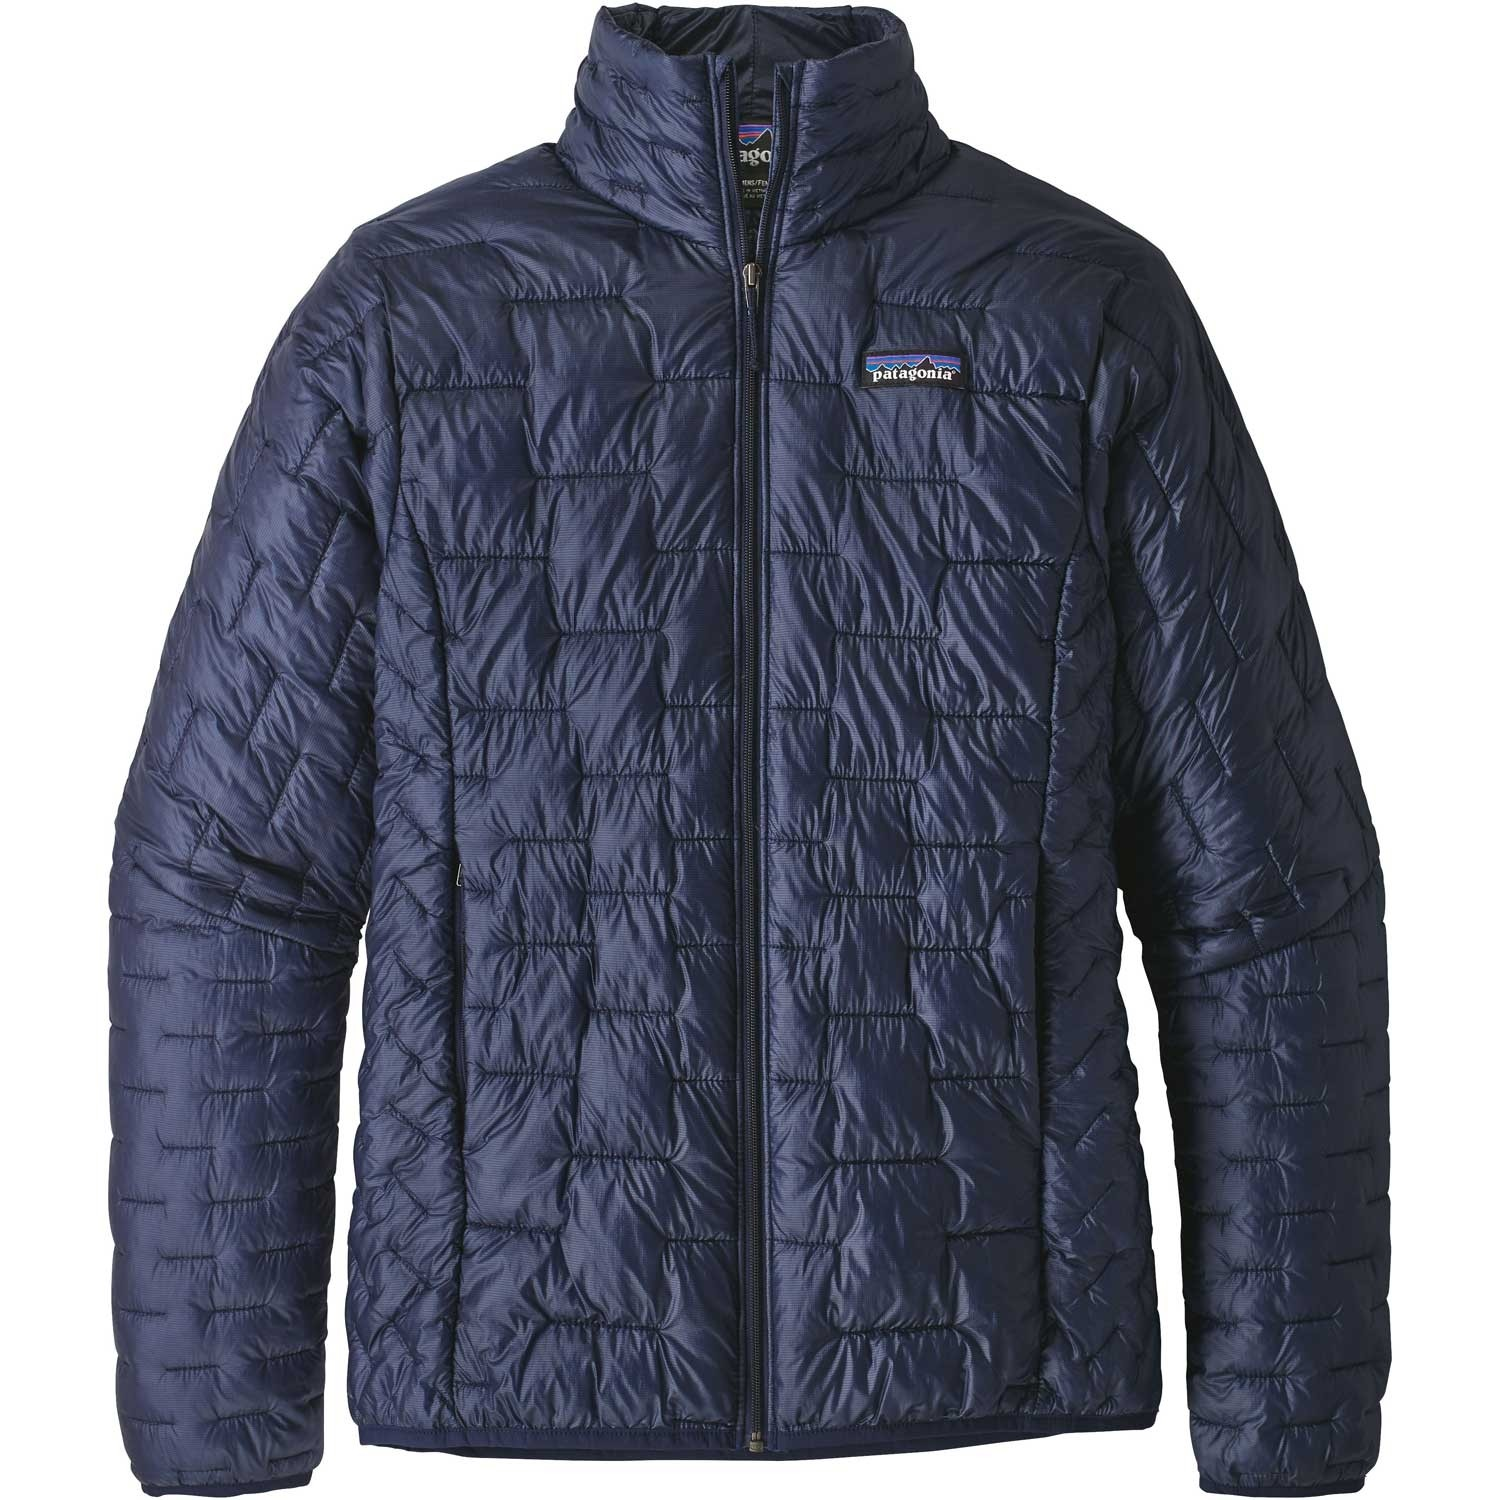 Patagonia Women's Micro Puff Jacket - Classic Navy